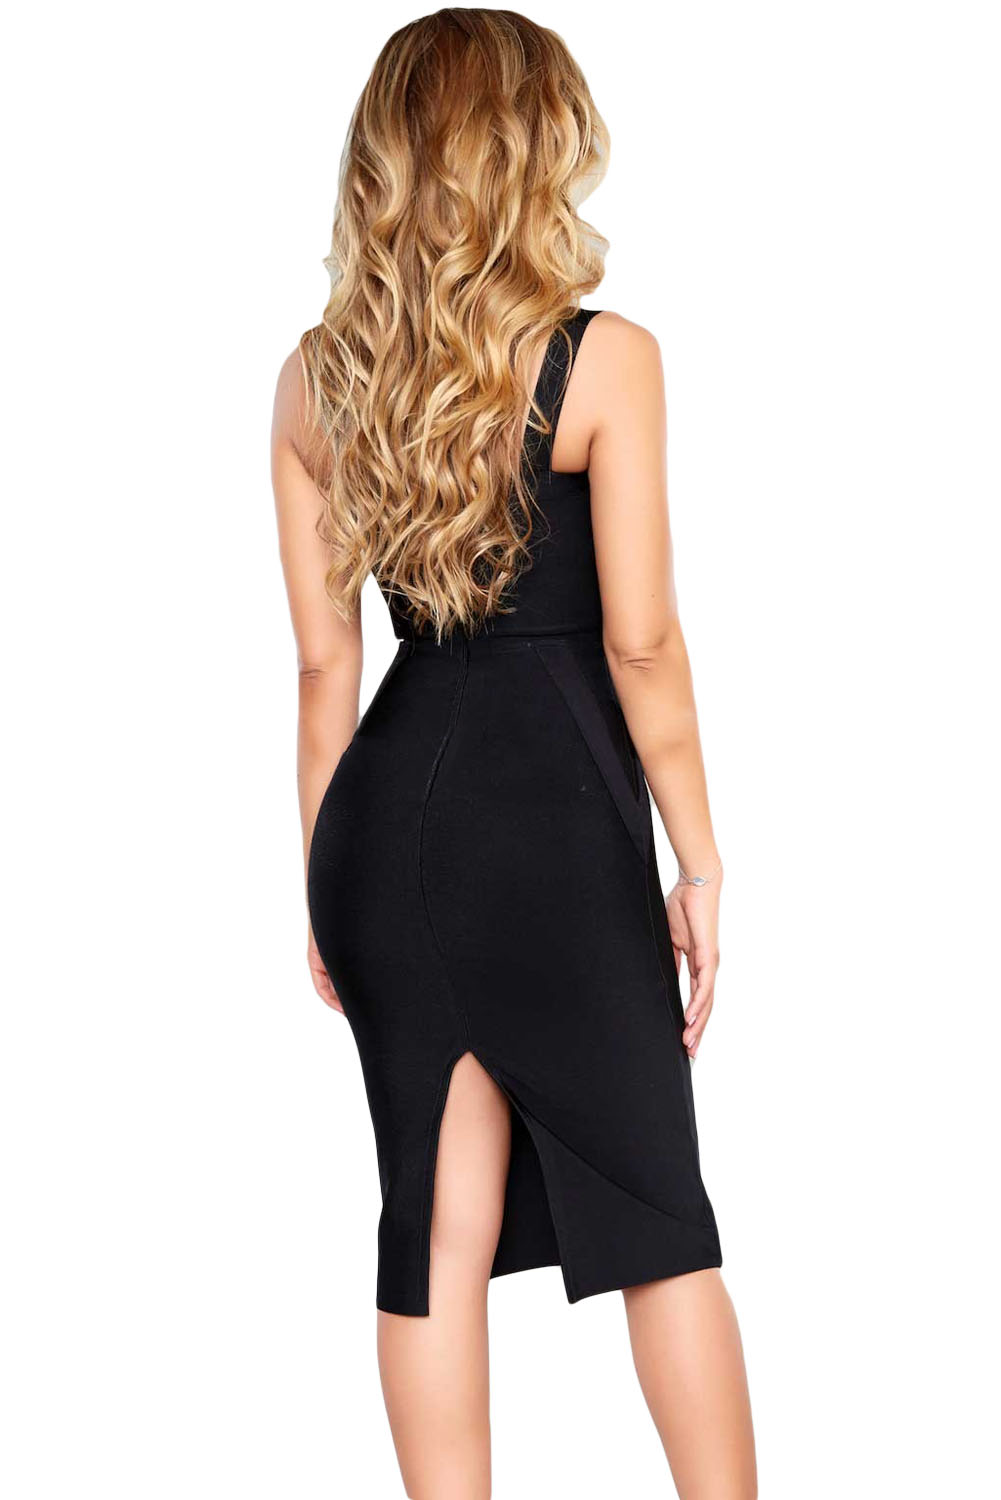 Black High Neck Hollow-out Bandage Dress